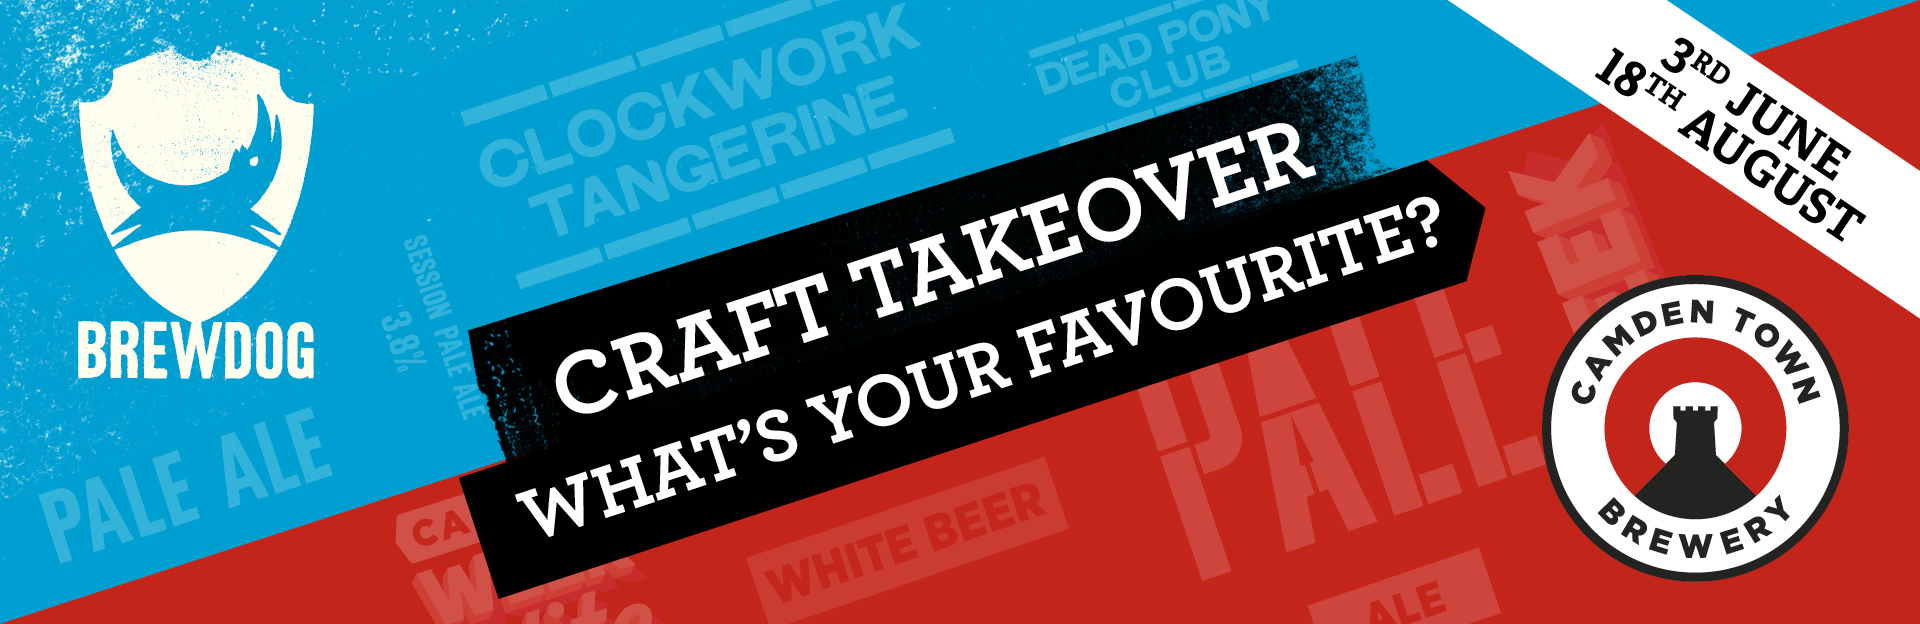 Craft Takeover at The Golden Lion